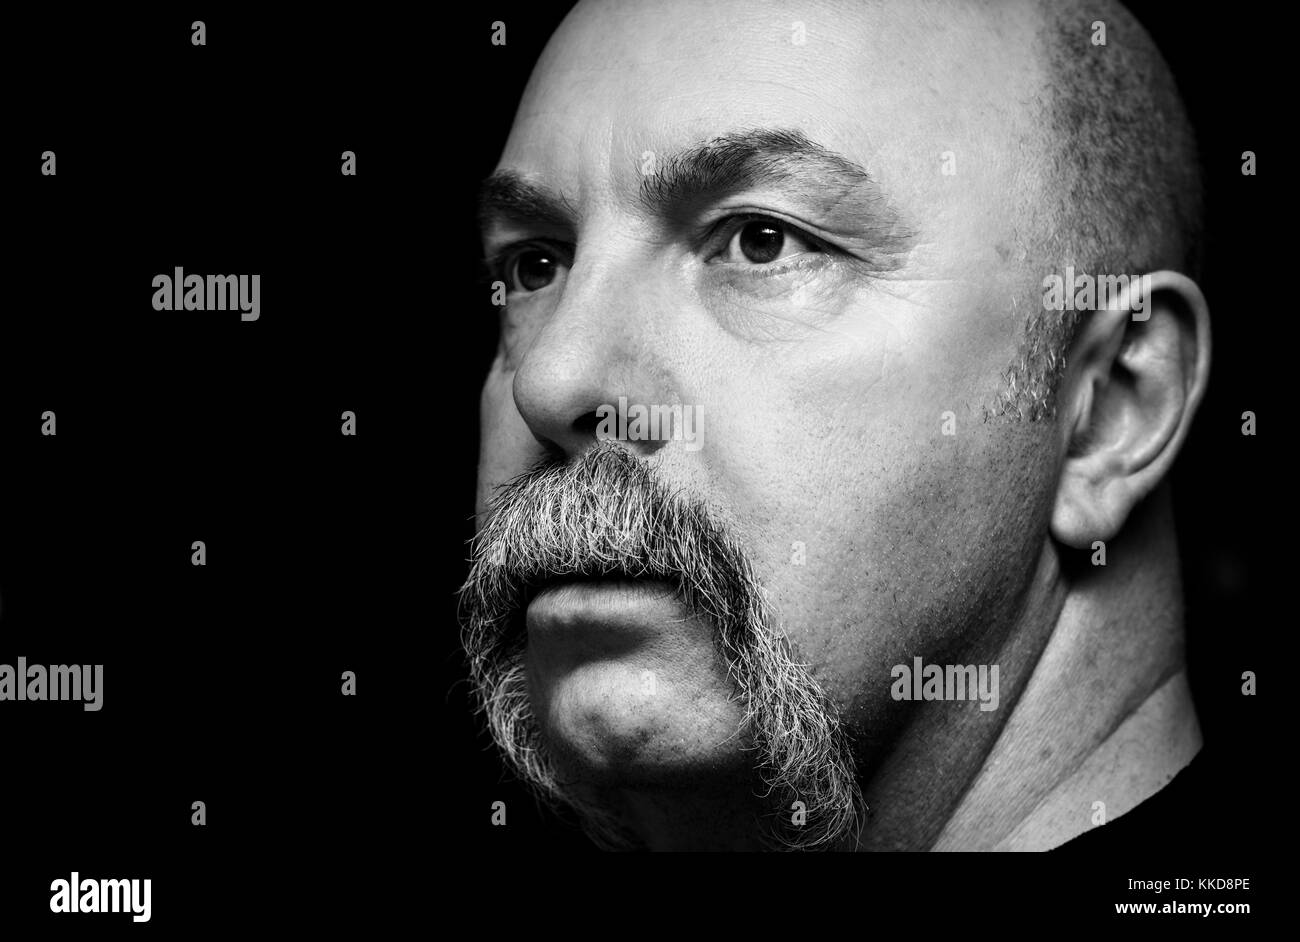 Head shot of a man with a handlebar moustache - Stock Image